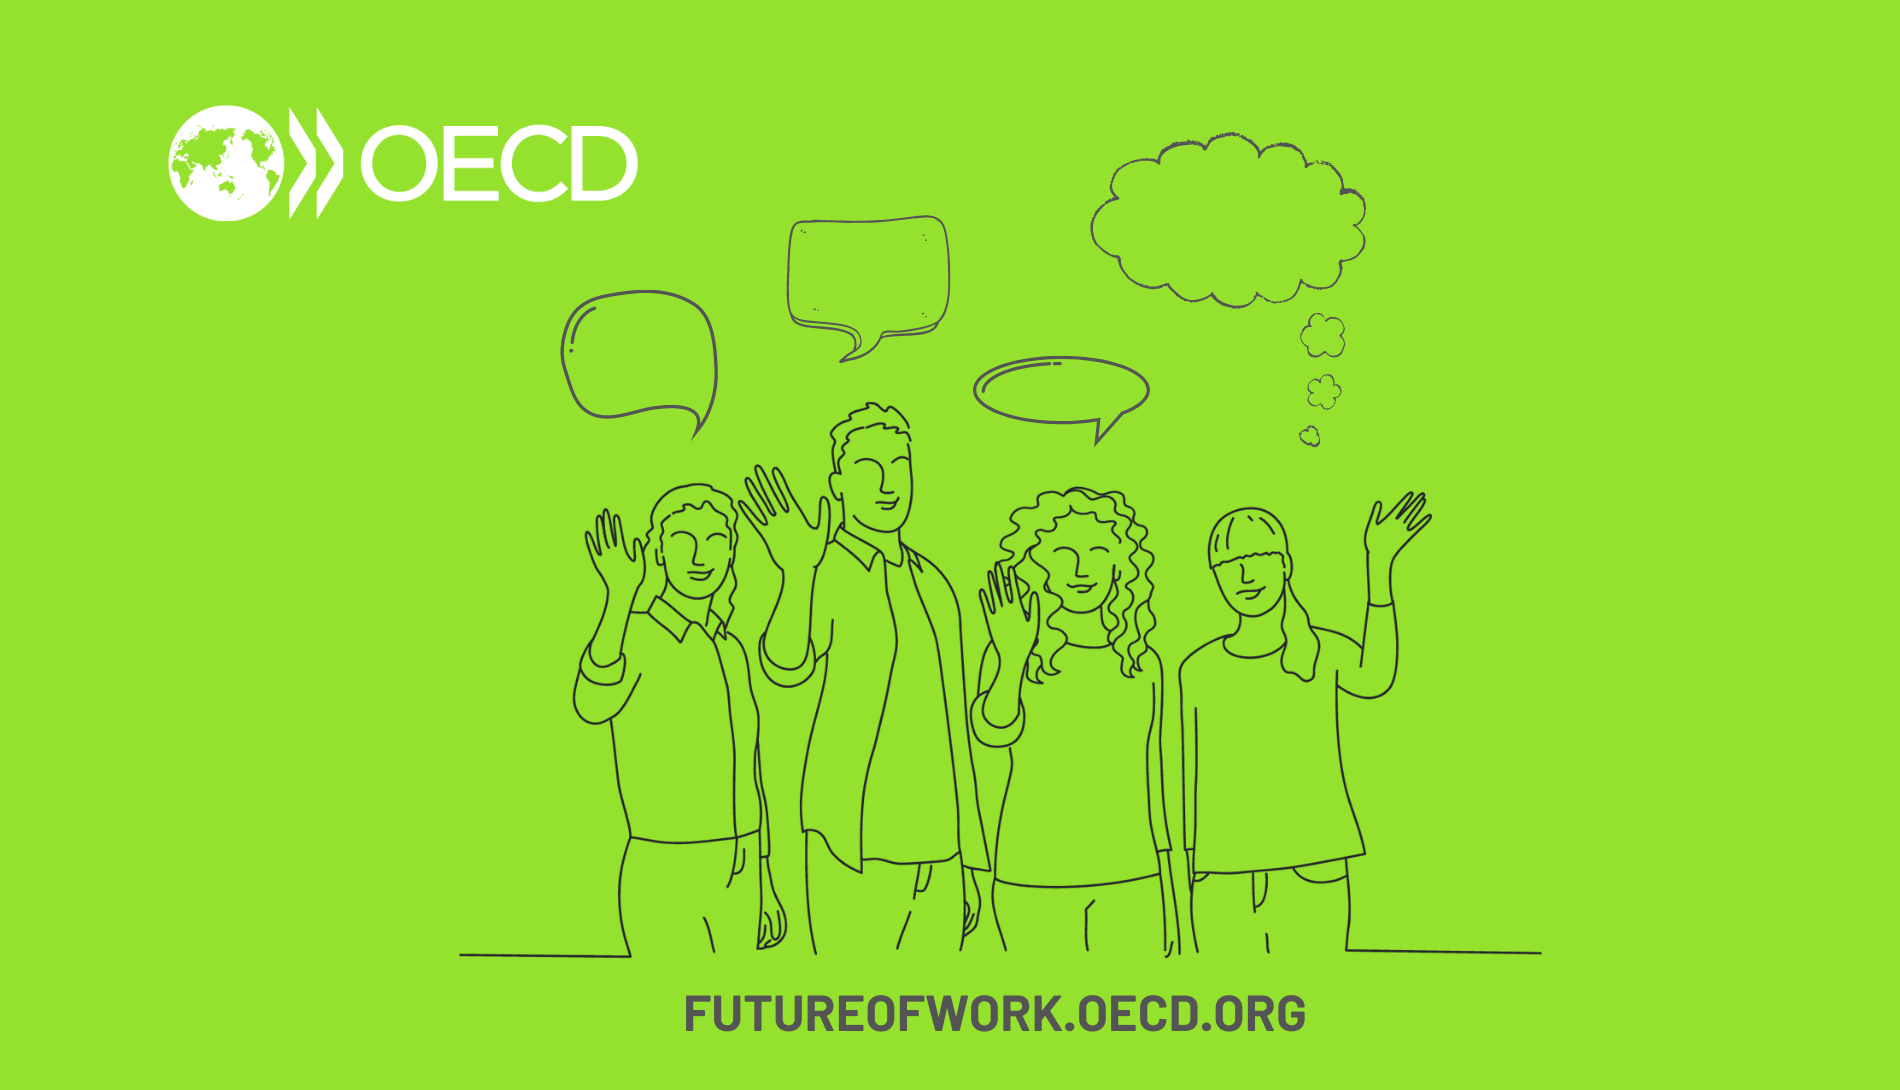 OECD - The Future of Work